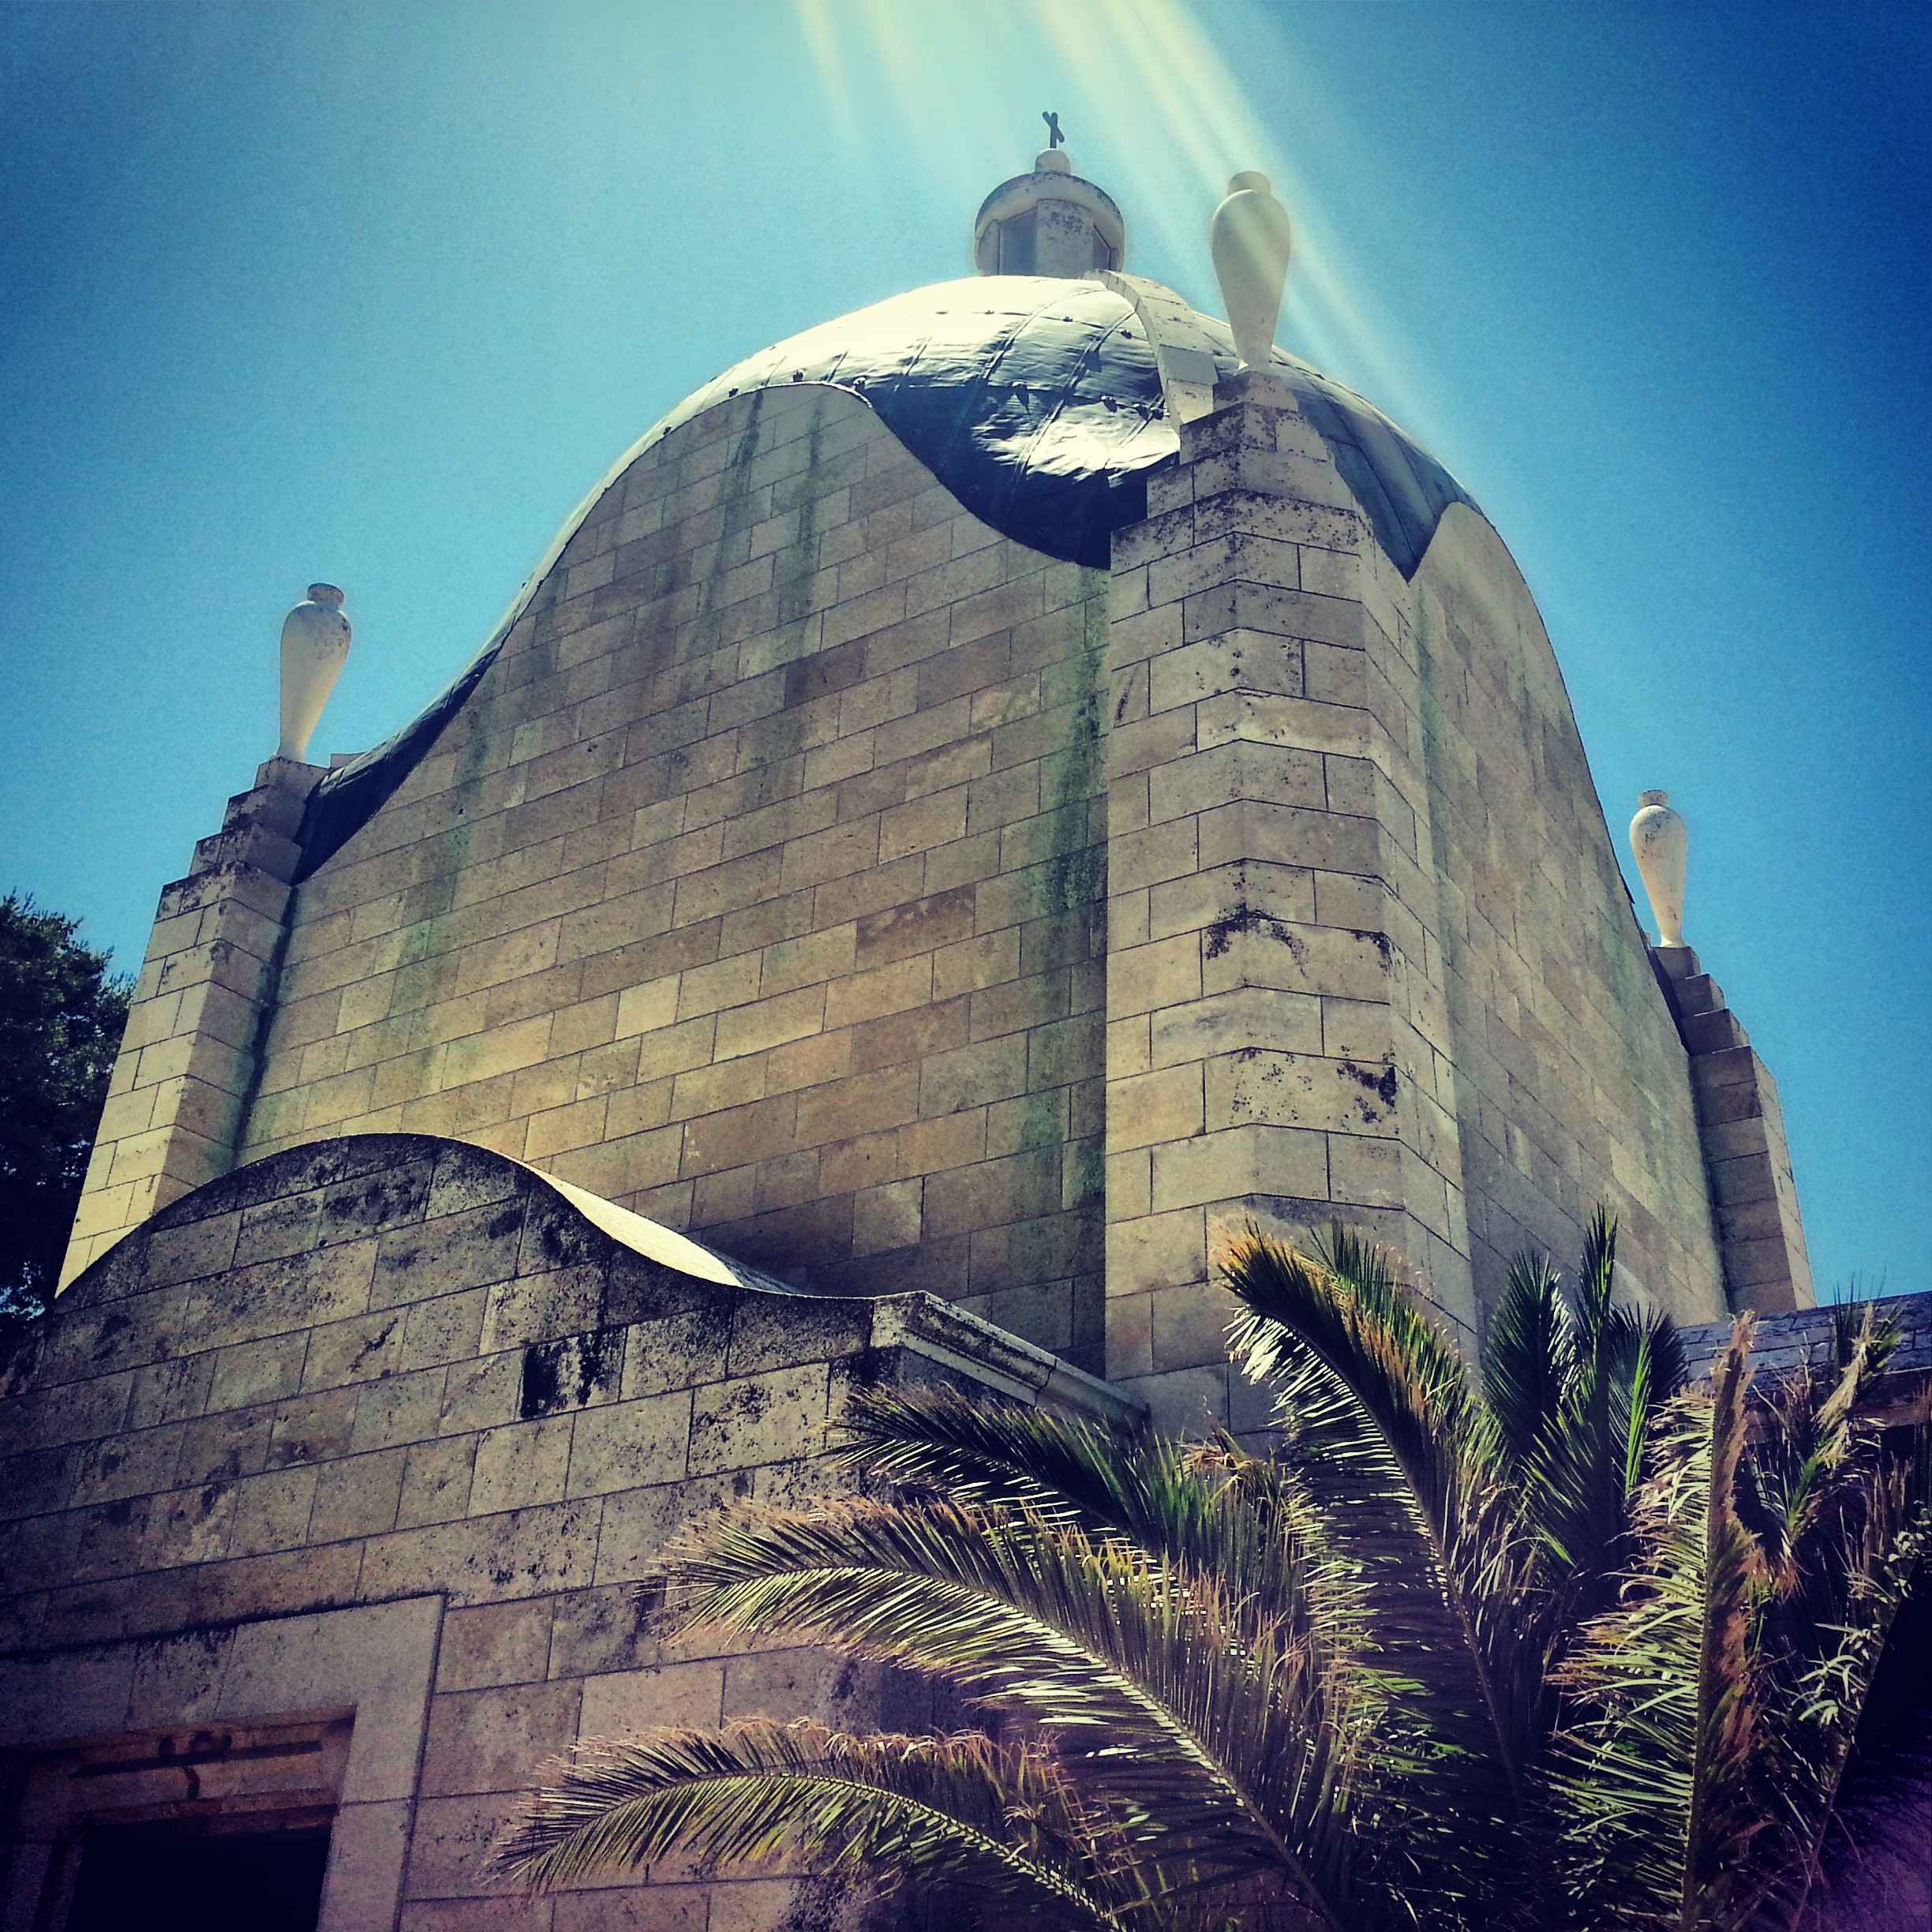 Church of Dominus Flevit on the Mount of Olives